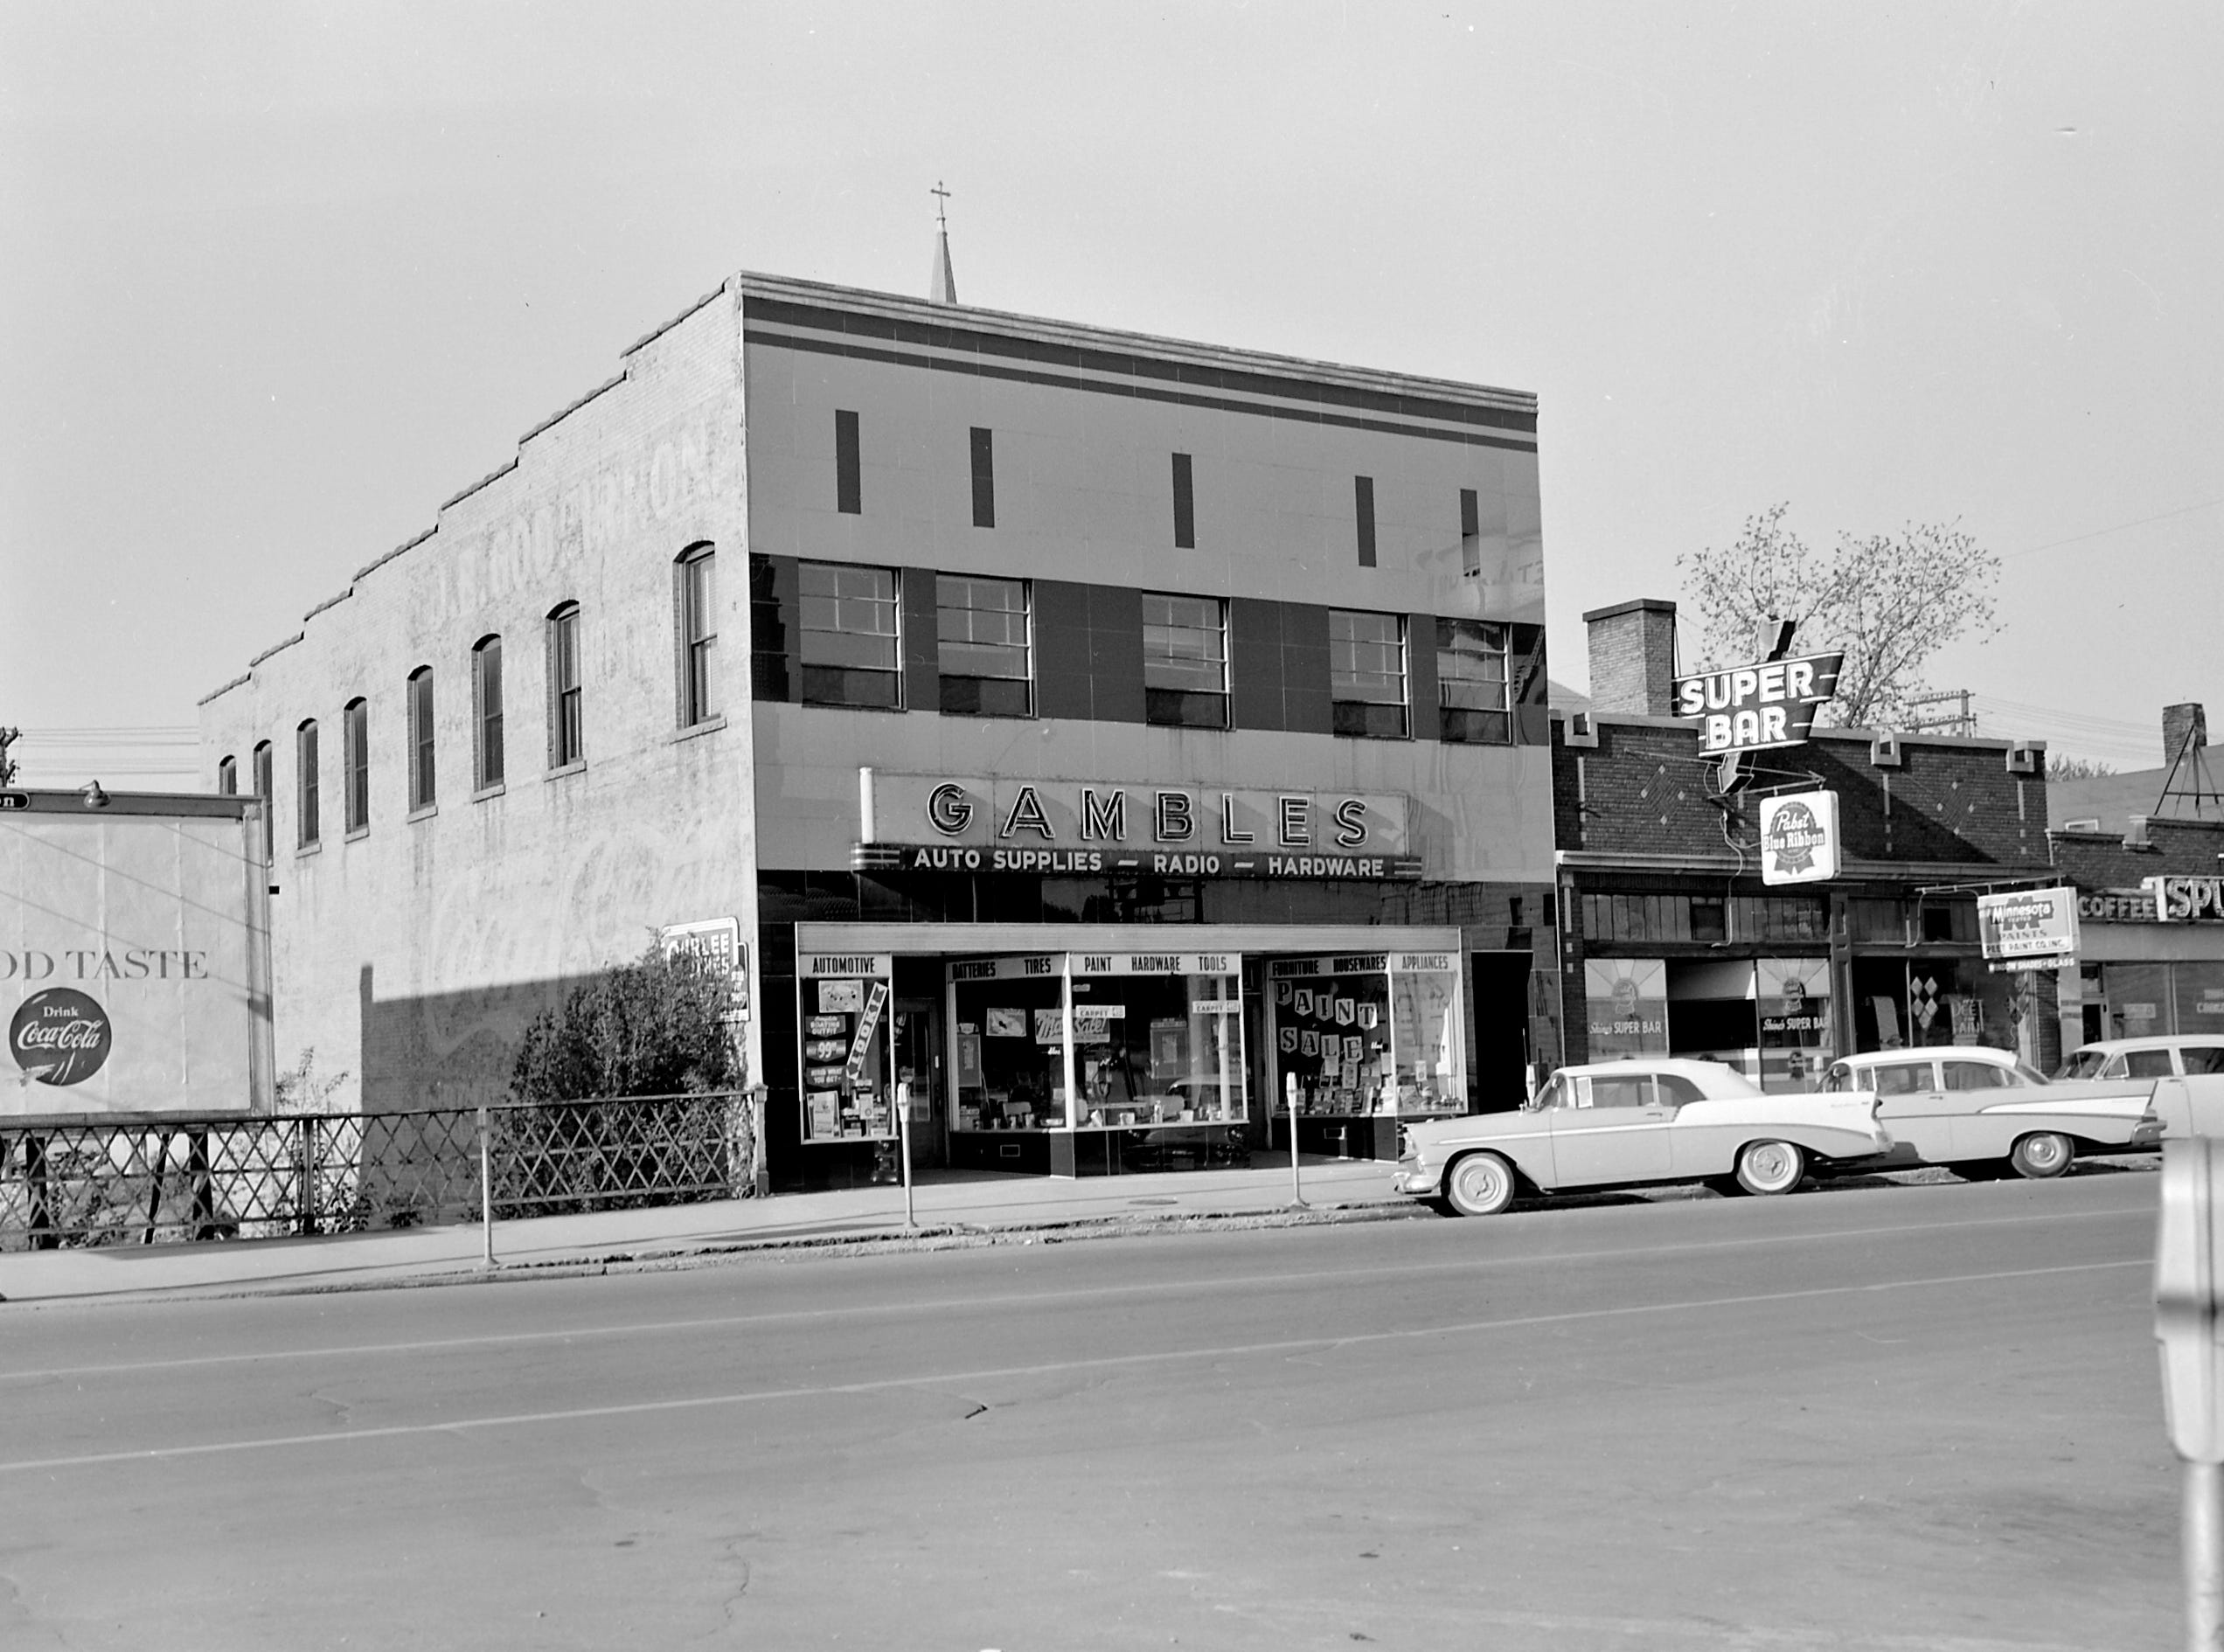 1957 Downtown Appleton. 300 West block on the south side of College Avenue: Coke billboard. Gambles. Super Bar. Peet Paint Co. Inc. Spudnut Cafe. Post-Crescent photo by staff